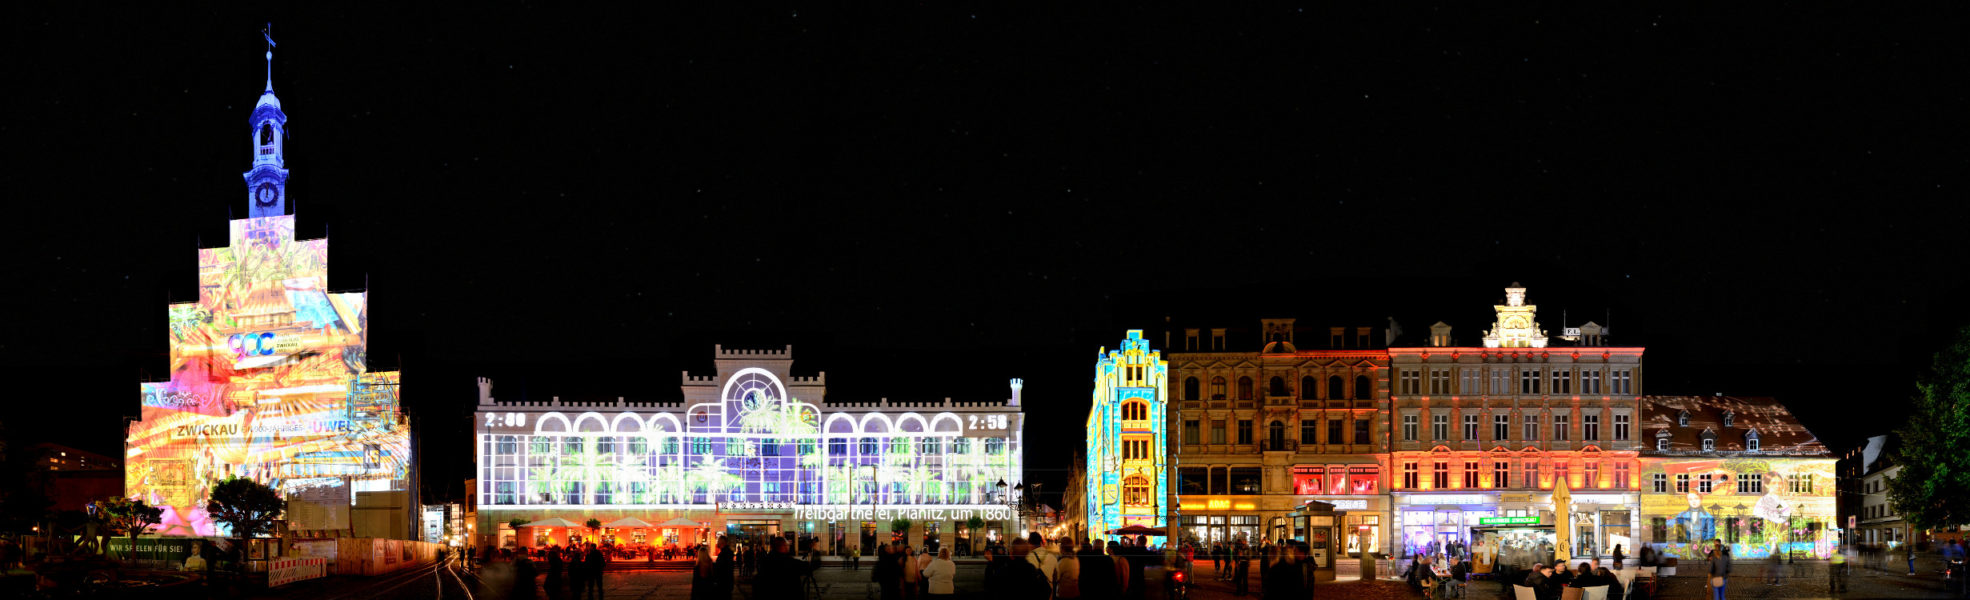 Hauptmarkt | Zwickau Festival of Lights